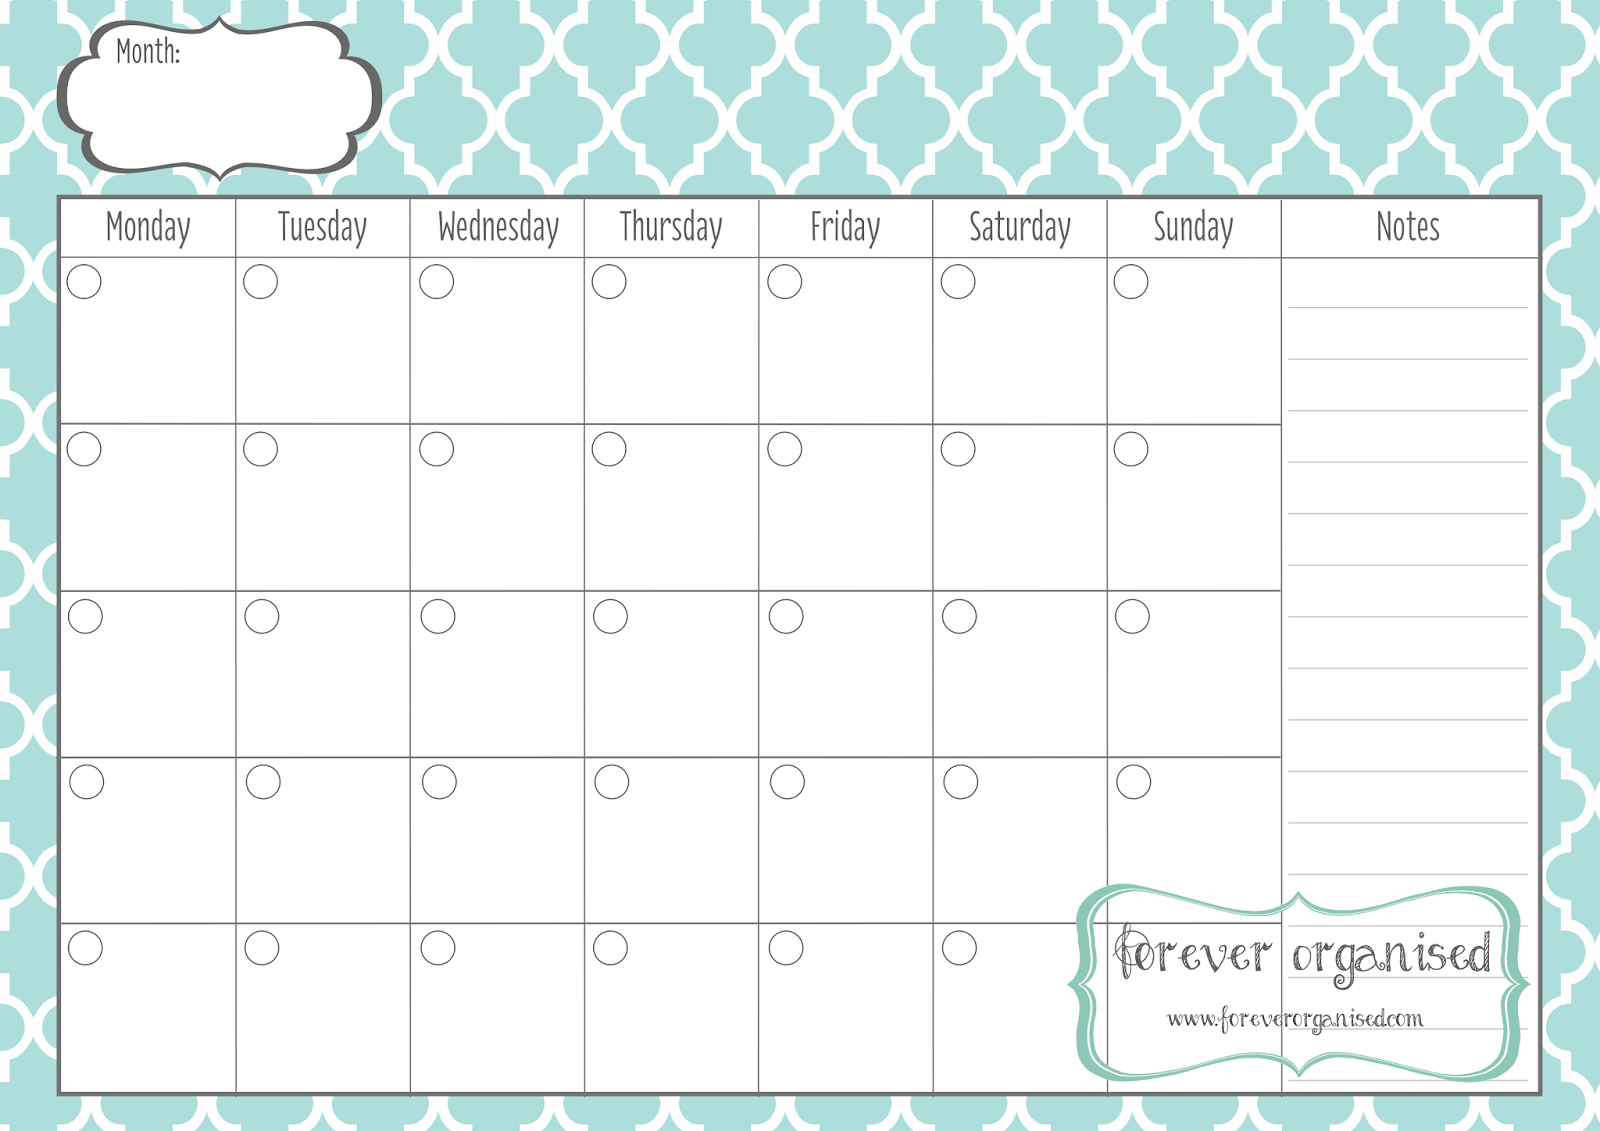 Monthly Calendar To Print : Monthly calendar to print templates free printable